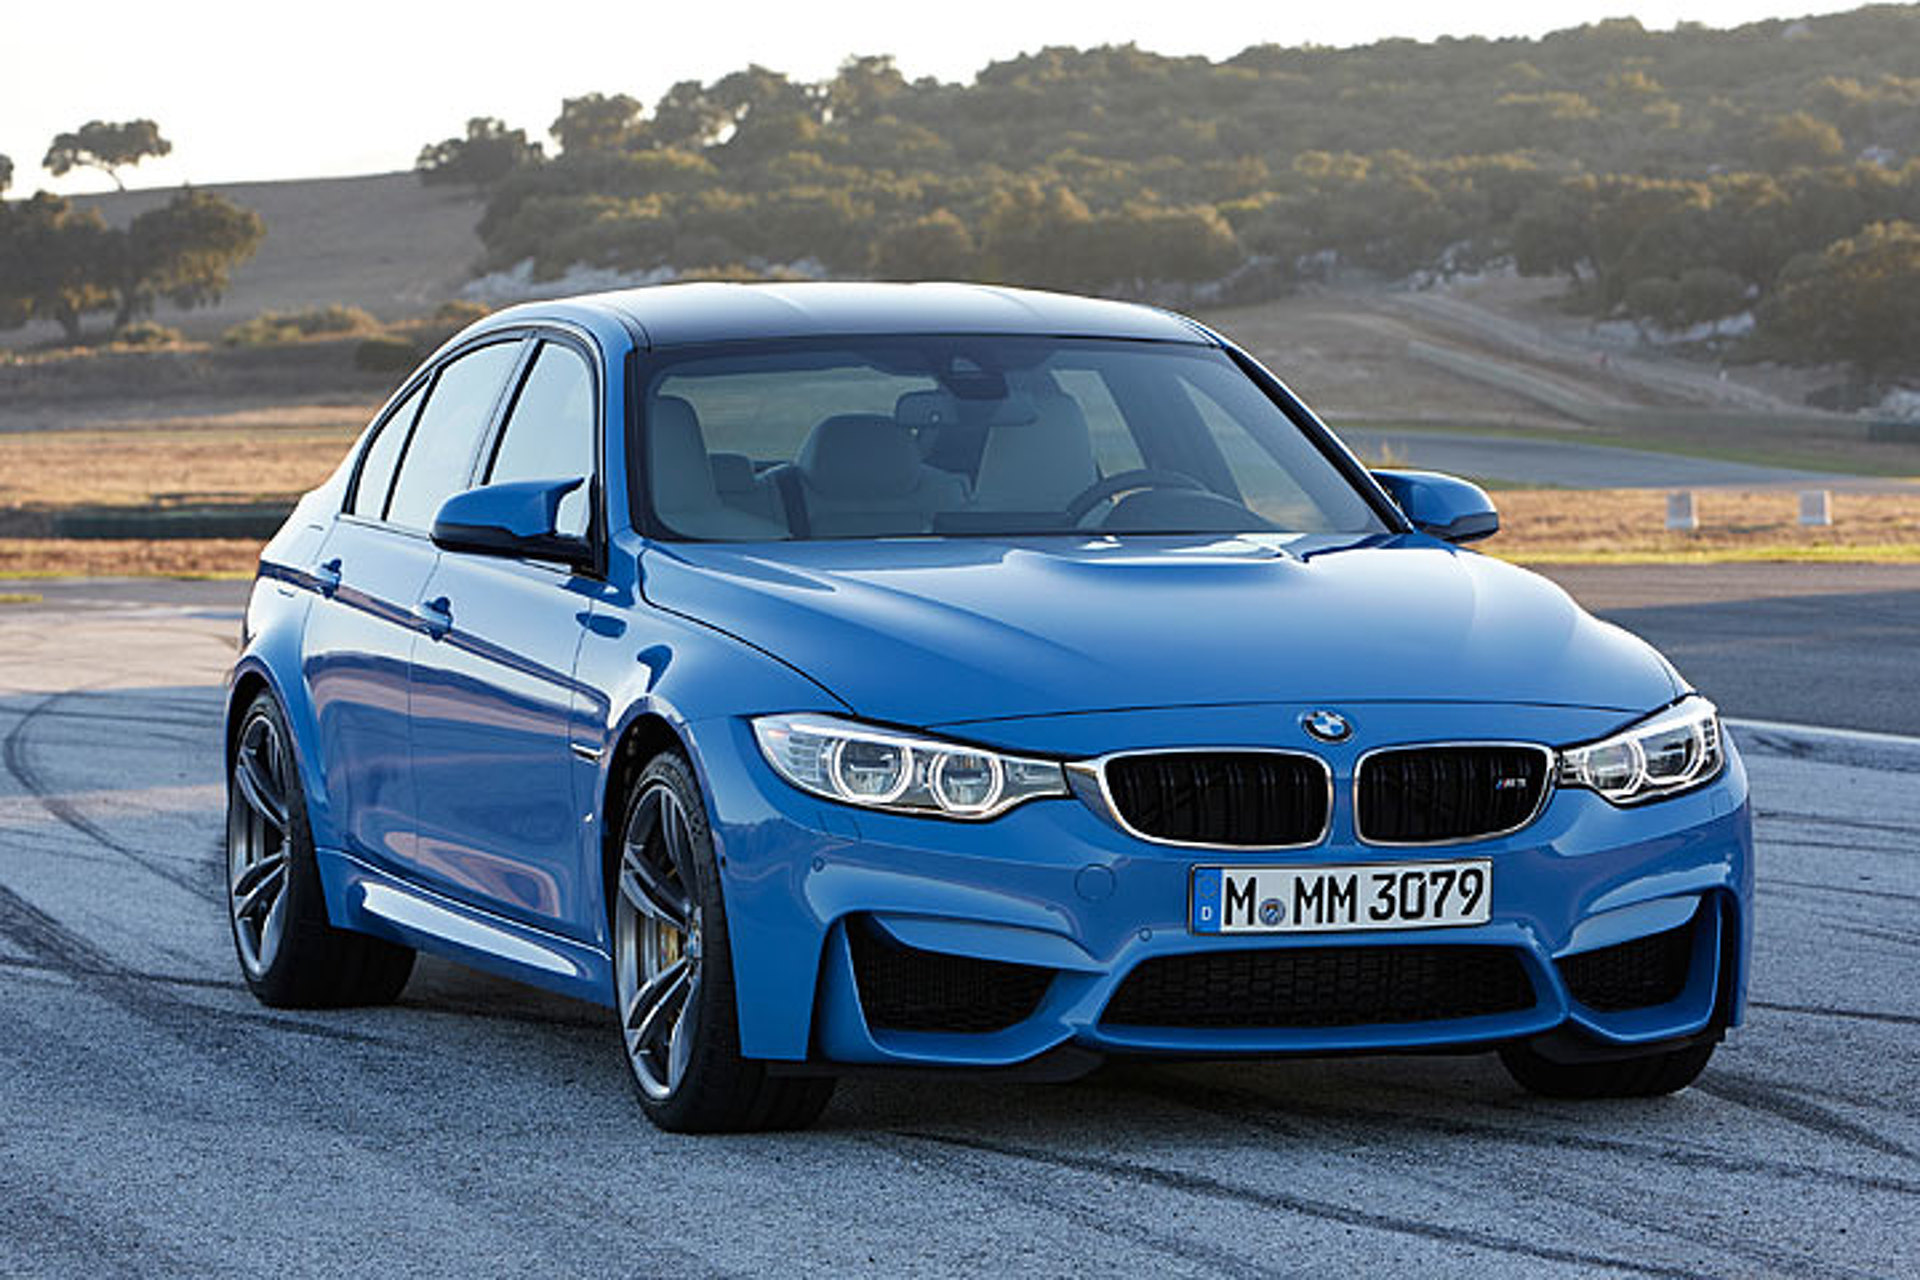 5 New Cars We're Thankful for This Thanksgiving